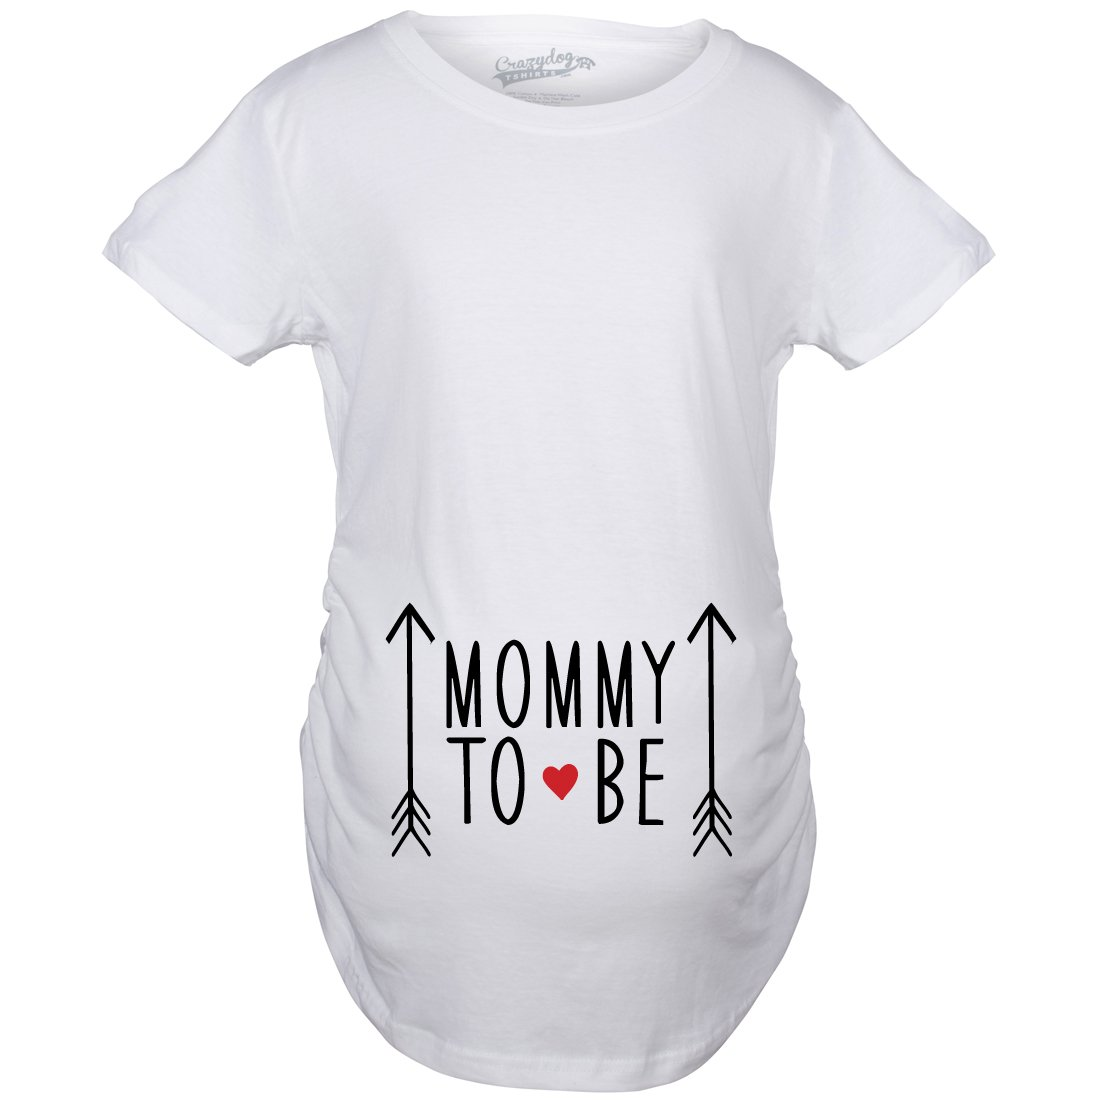 Maternity Mommy To Be Pregnancy Tshirt Adorable Baby Announcement Tee (Blue) Crazy Dog Tshirts